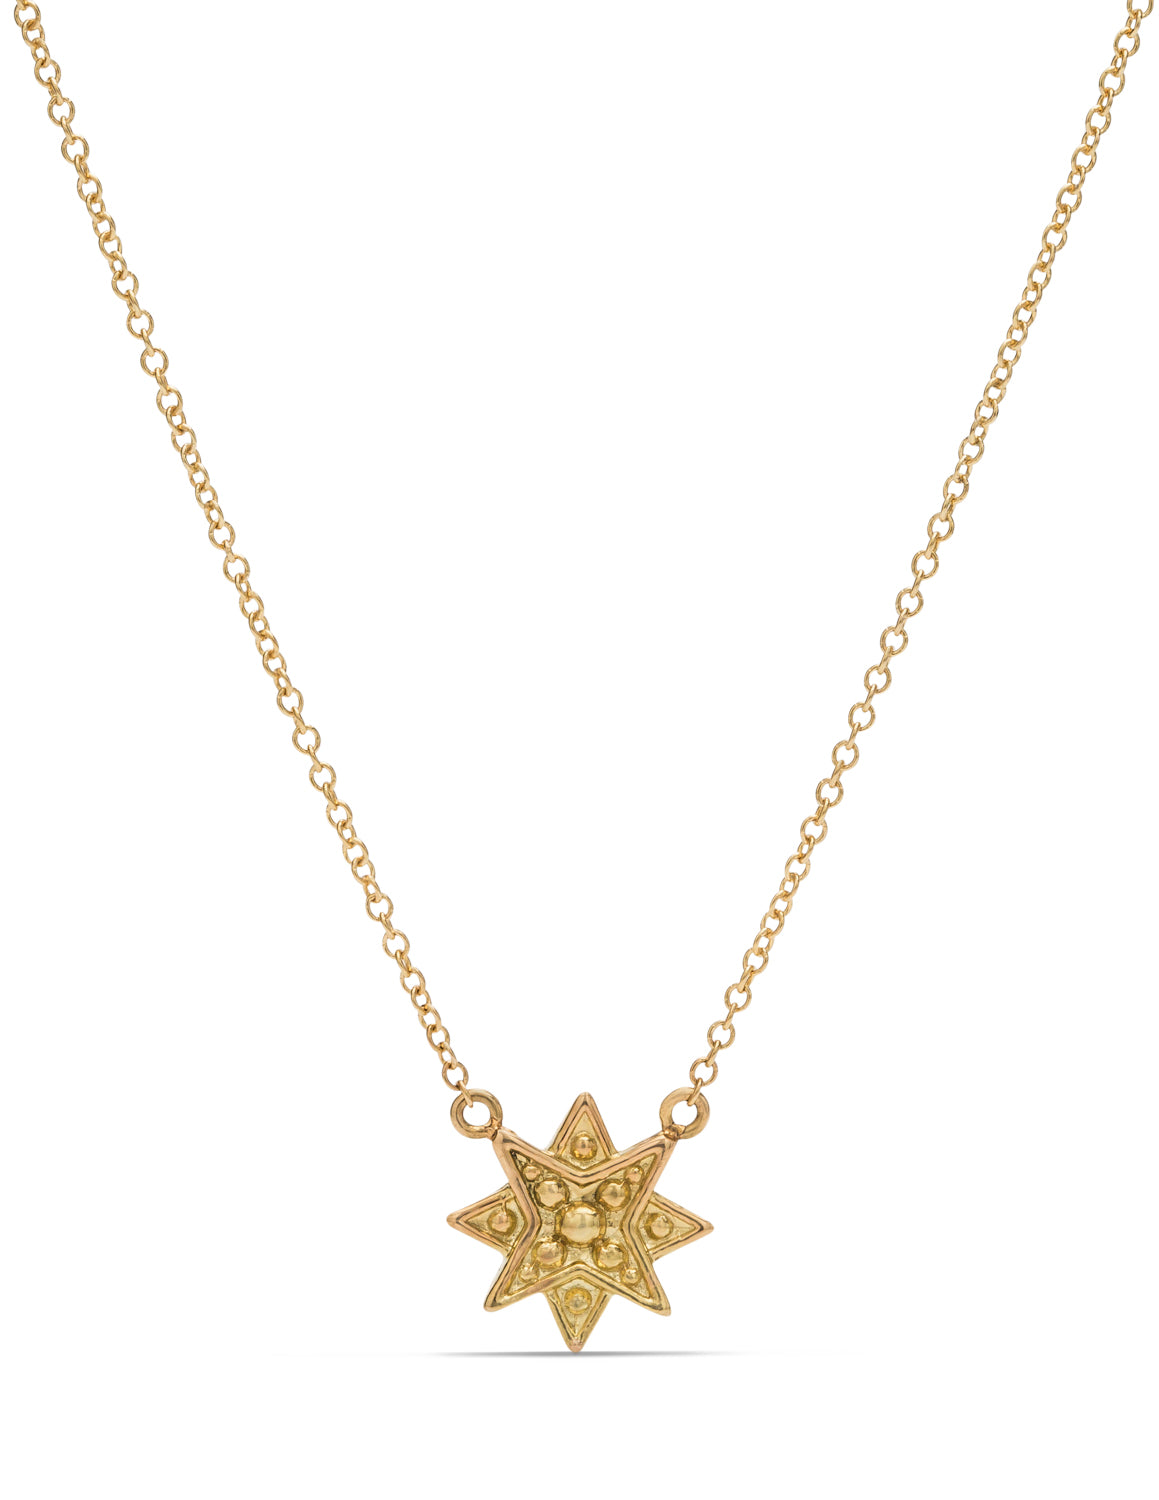 18K Gold Granulated Star Pendant - Charles Koll Jewellers